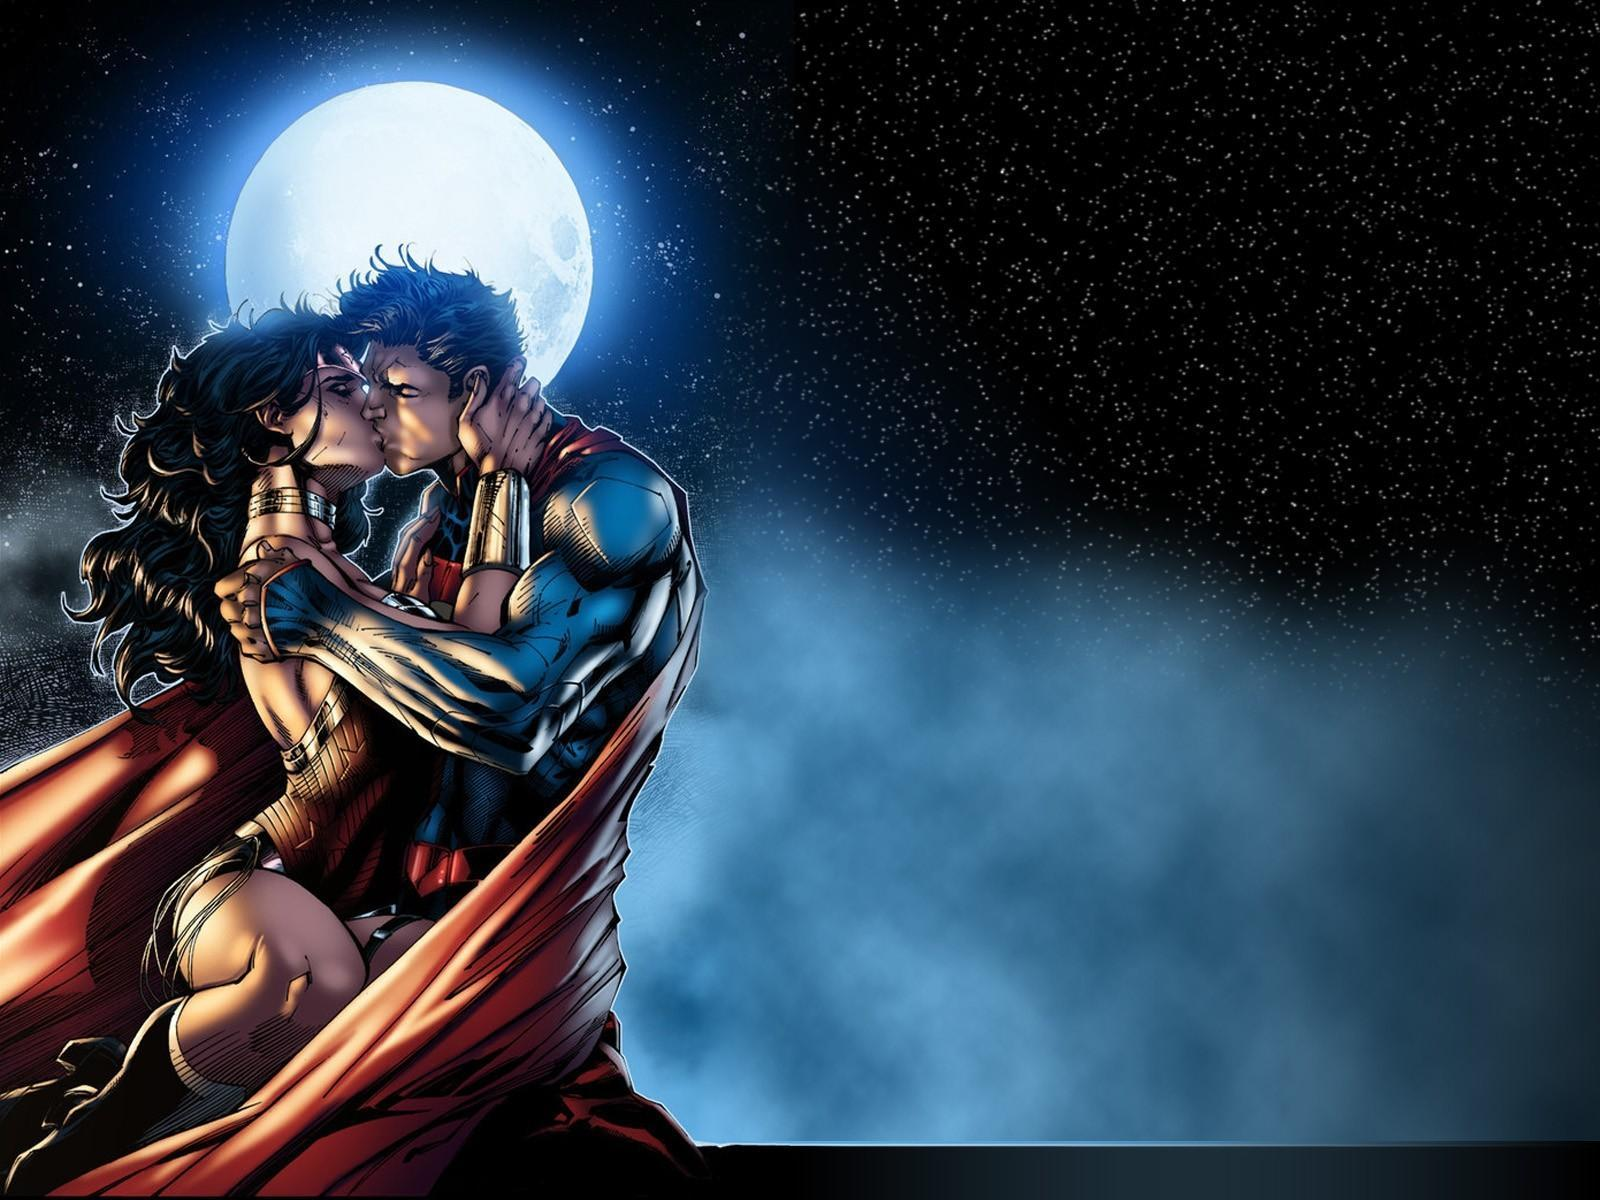 Superman Wonder Woman Wallpaper - WallpaperSafari